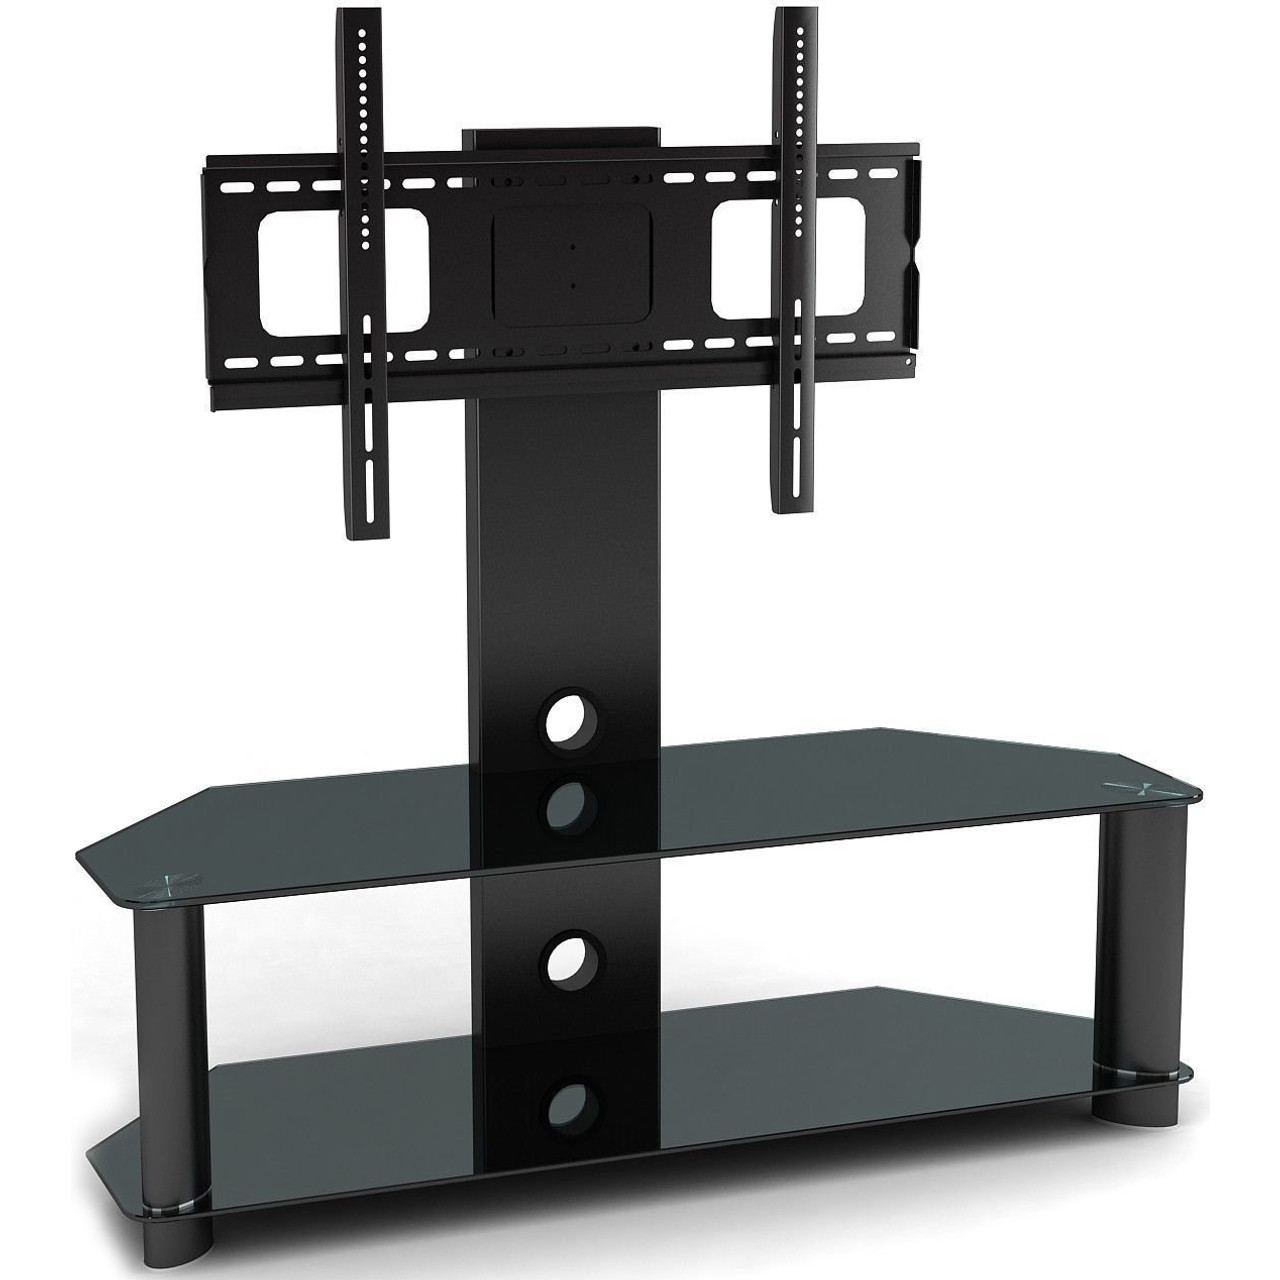 stands wall shelf mounted furniture tv for mount components under shelves